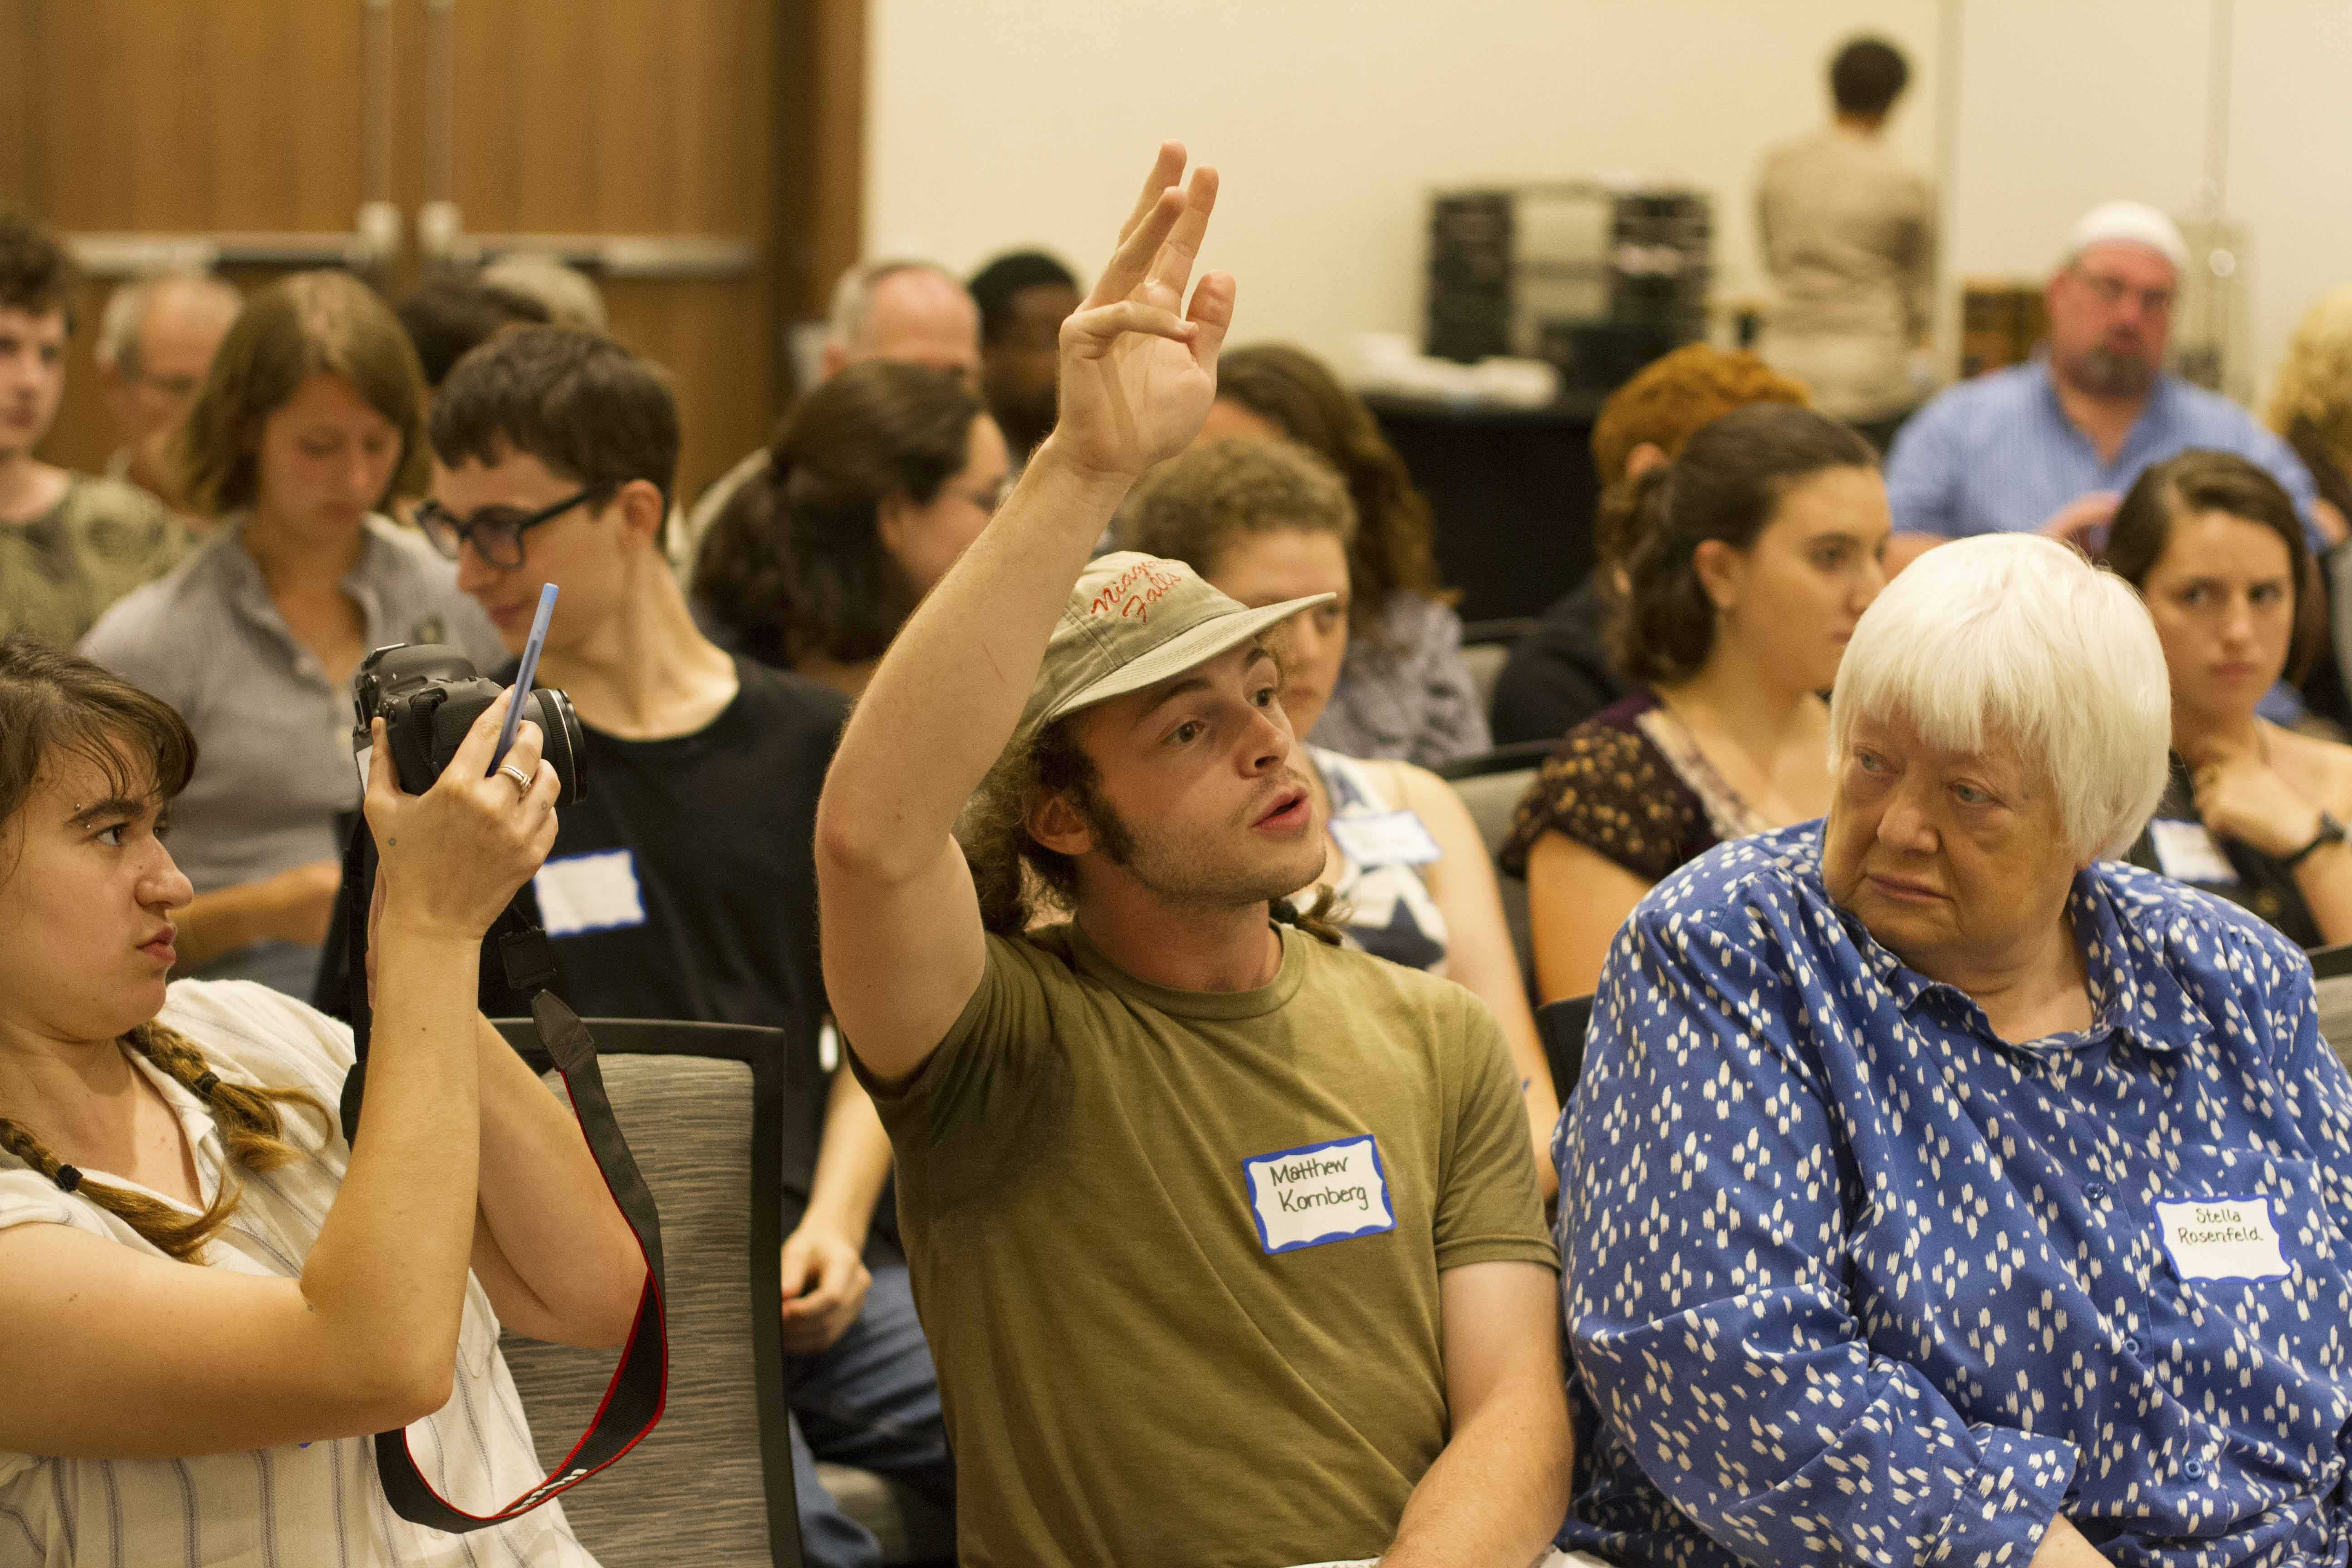 College junior Matthew Kornberg raises their hand at last night's Oberlin ACF anti-Semitism symposium at The Hotel at Oberlin. Student Senate released a letter condemning the group earlier in the week.